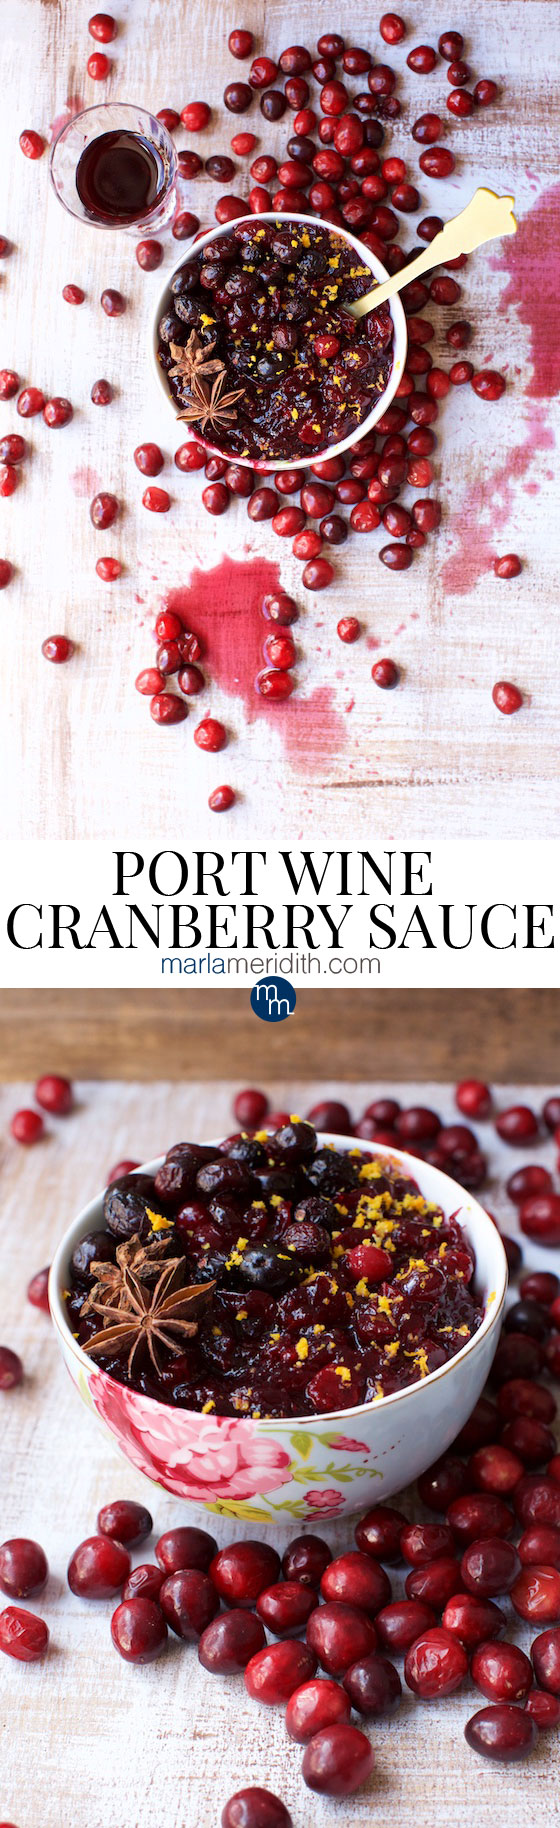 Port Wine Cranberry Sauce recipe. Bookmark for holiday feasts! Marlameridith.com #recipe #vegan #glutenfree #Christmas #Thanksgiving #holiday